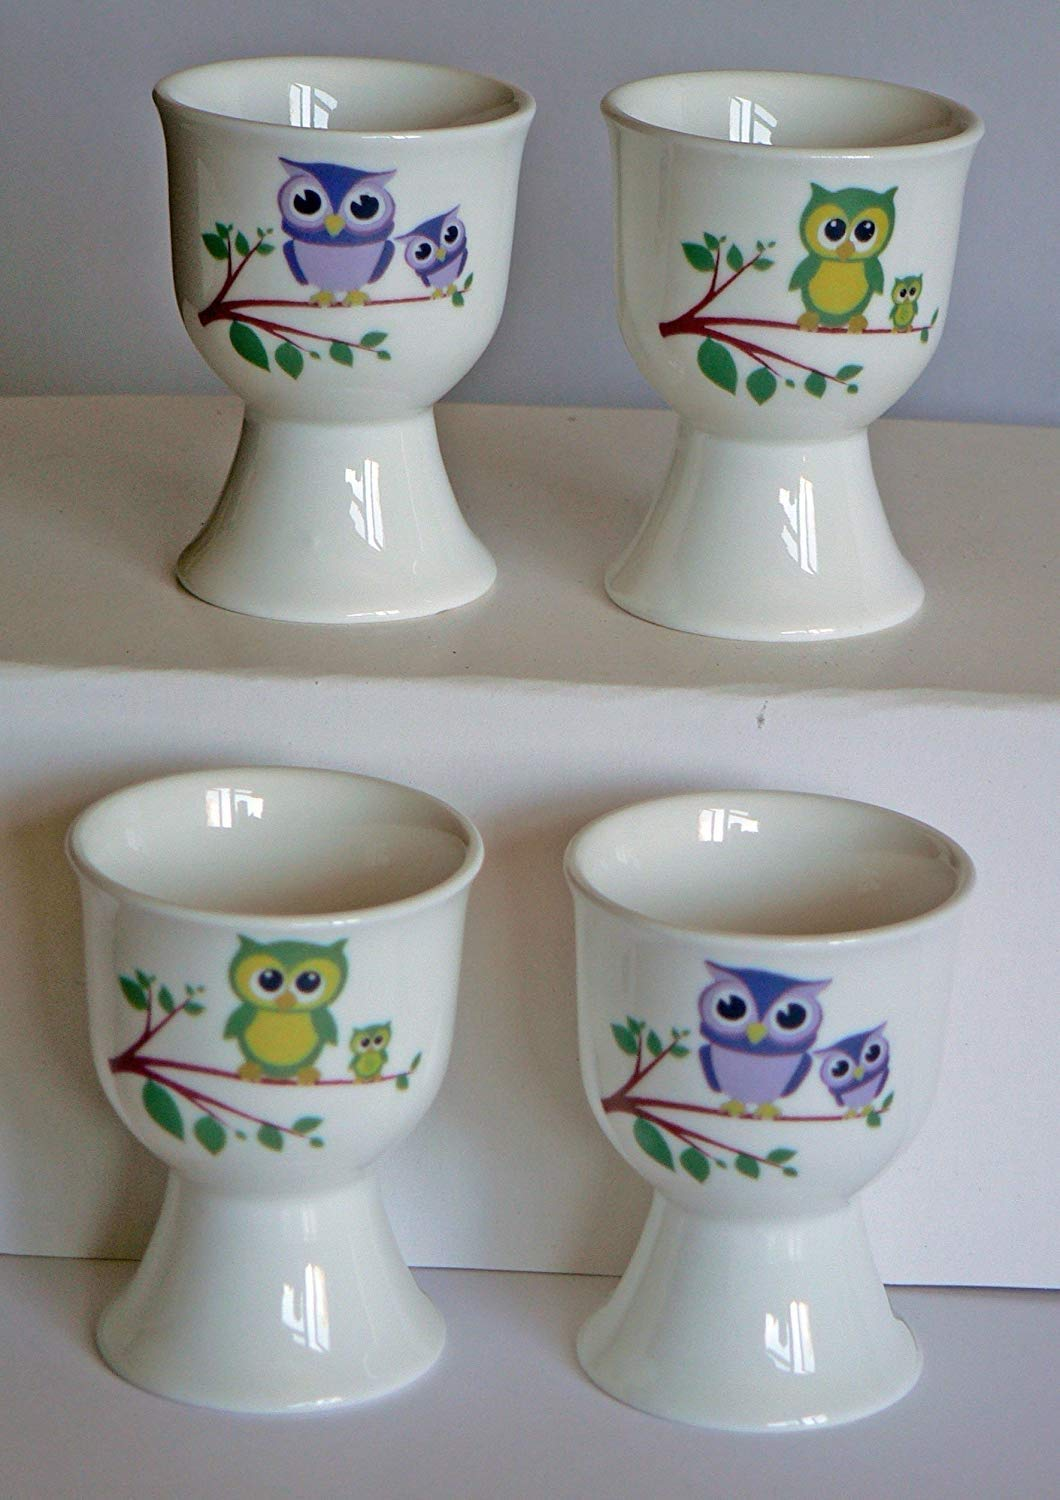 crackinchina Owl egg cups eggcup porcelain set of 4-2 pink & purple 2 green & yellow